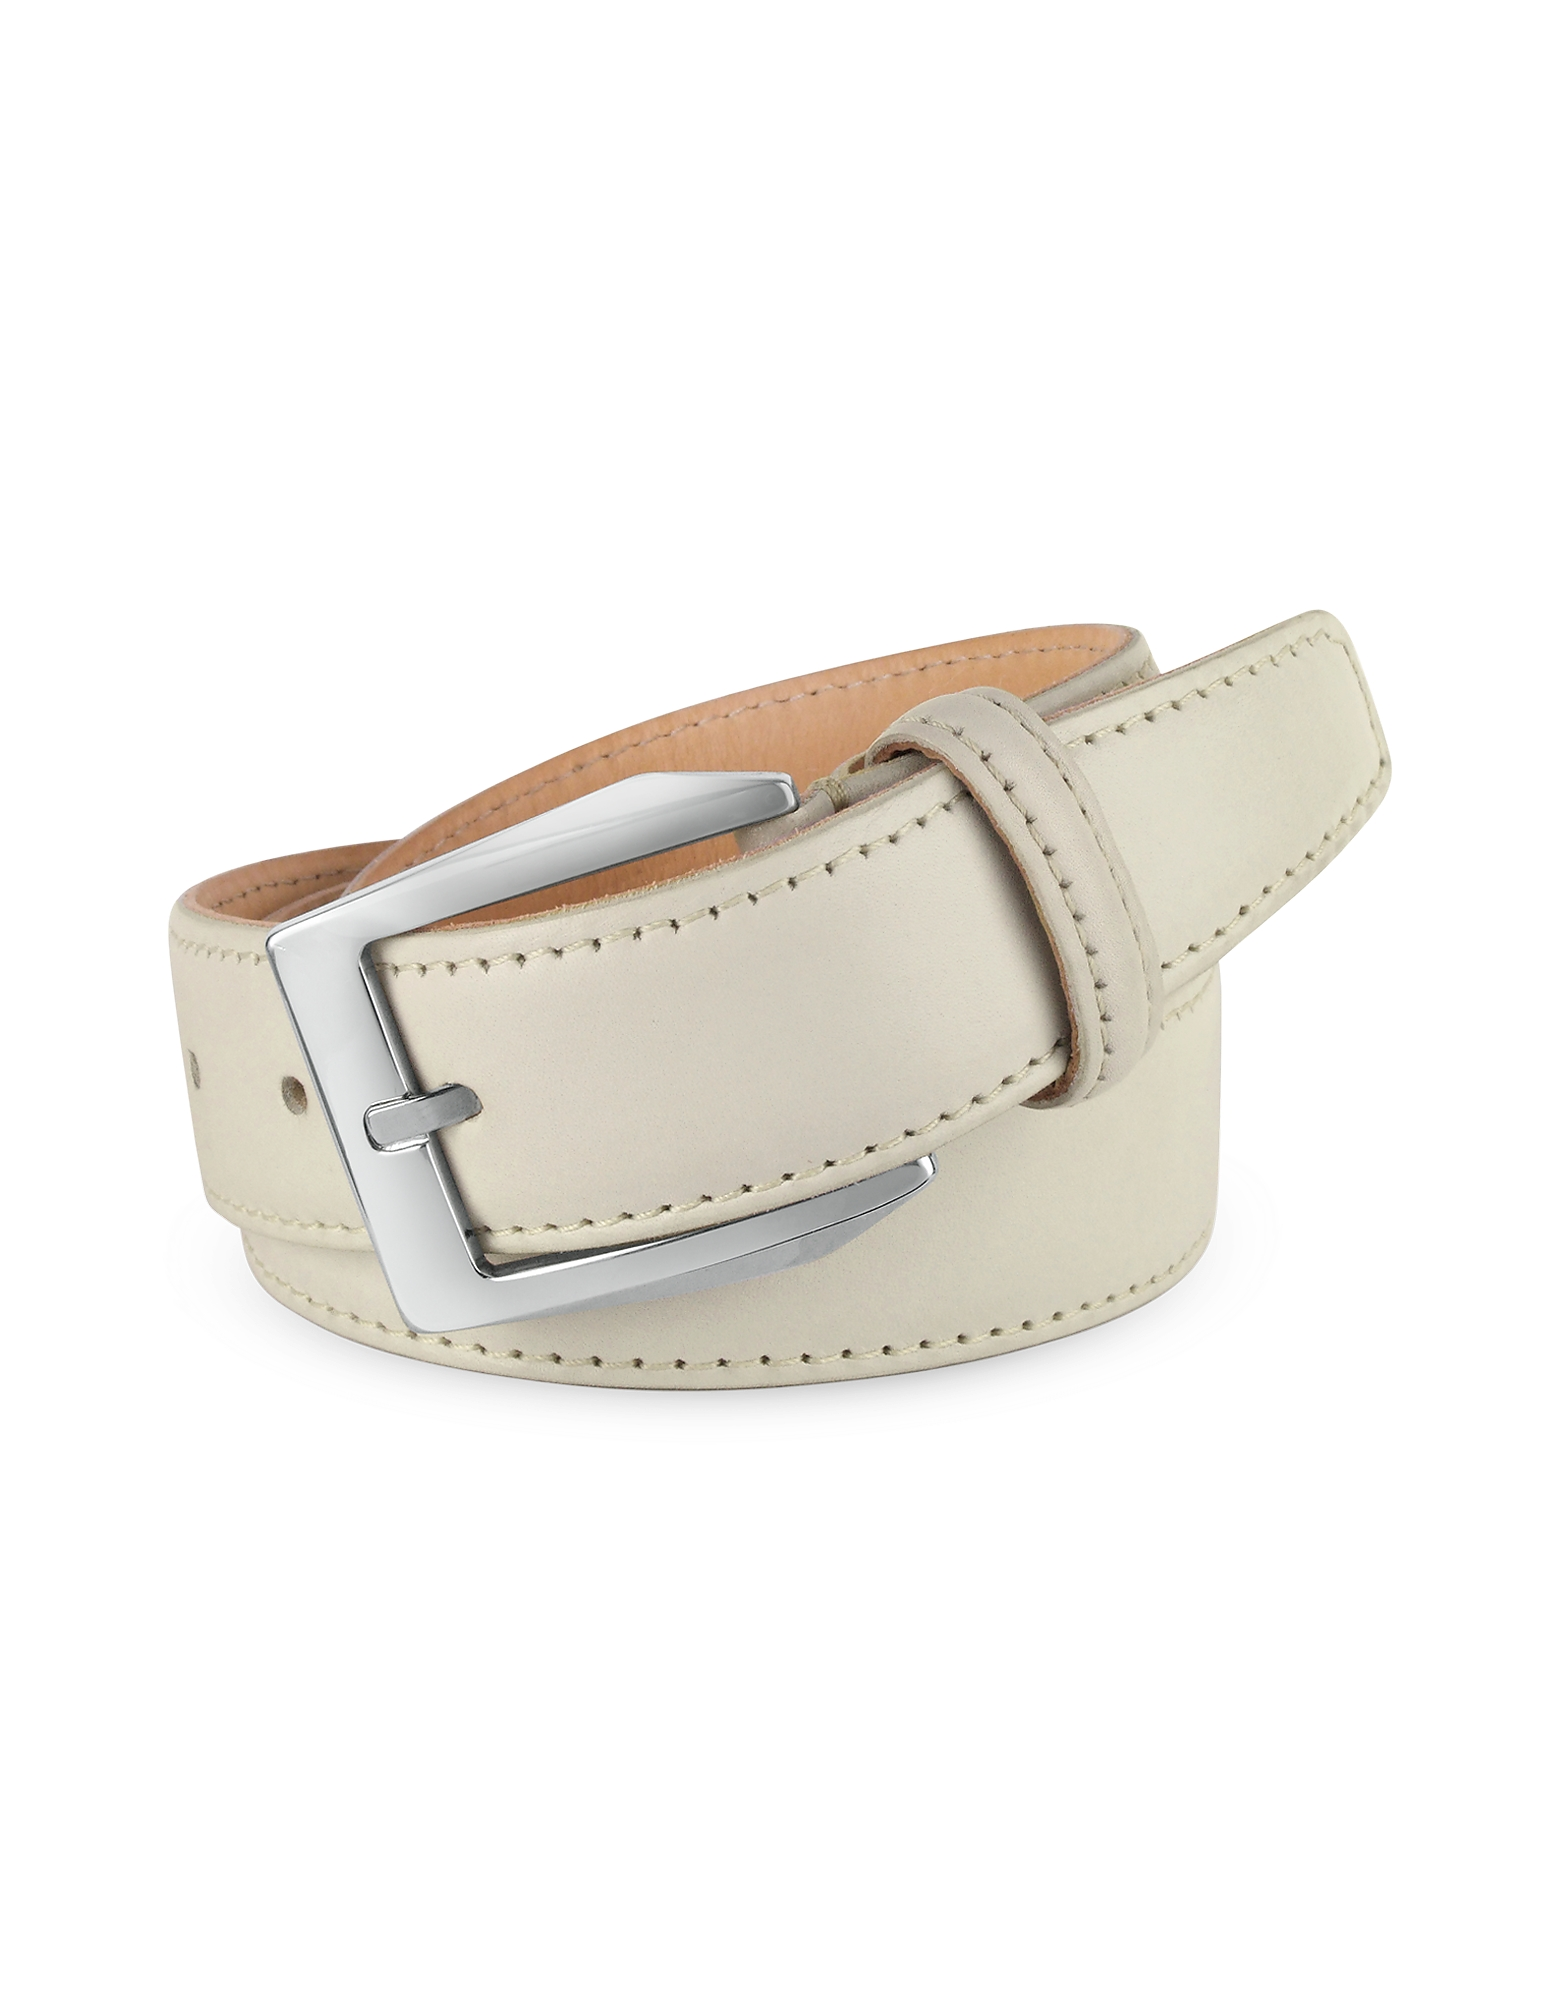 Men's White Hand Painted Italian Leather Belt